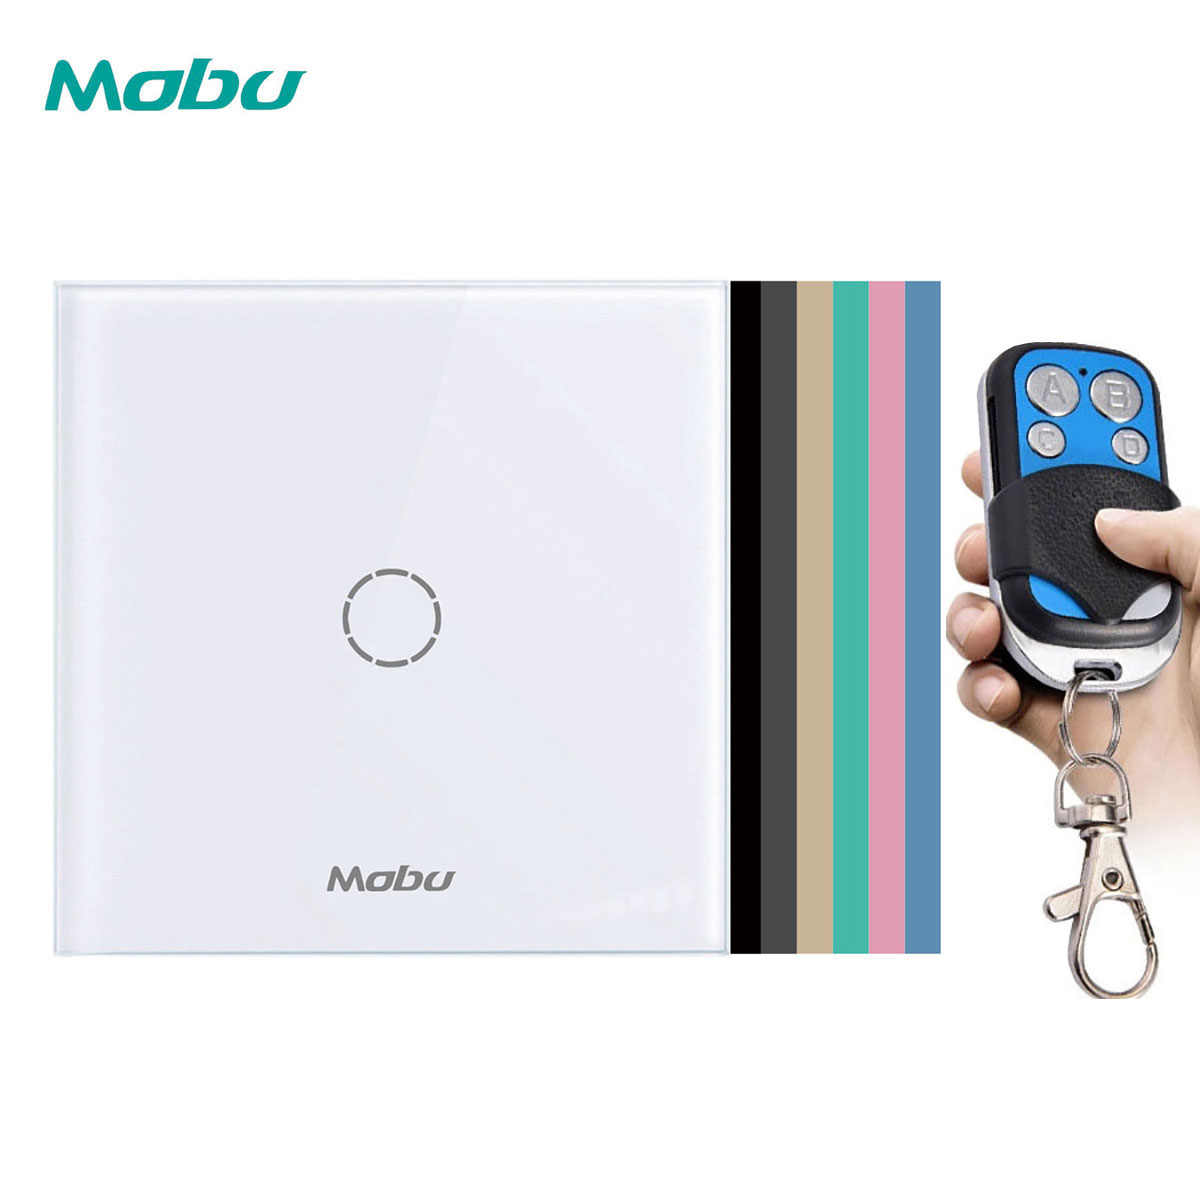 Mobu EU/UK Standar Lampu Dinding Sentuhan Switch untuk Remote Touch Switch 1Gang 1 Arah Remote Control switch